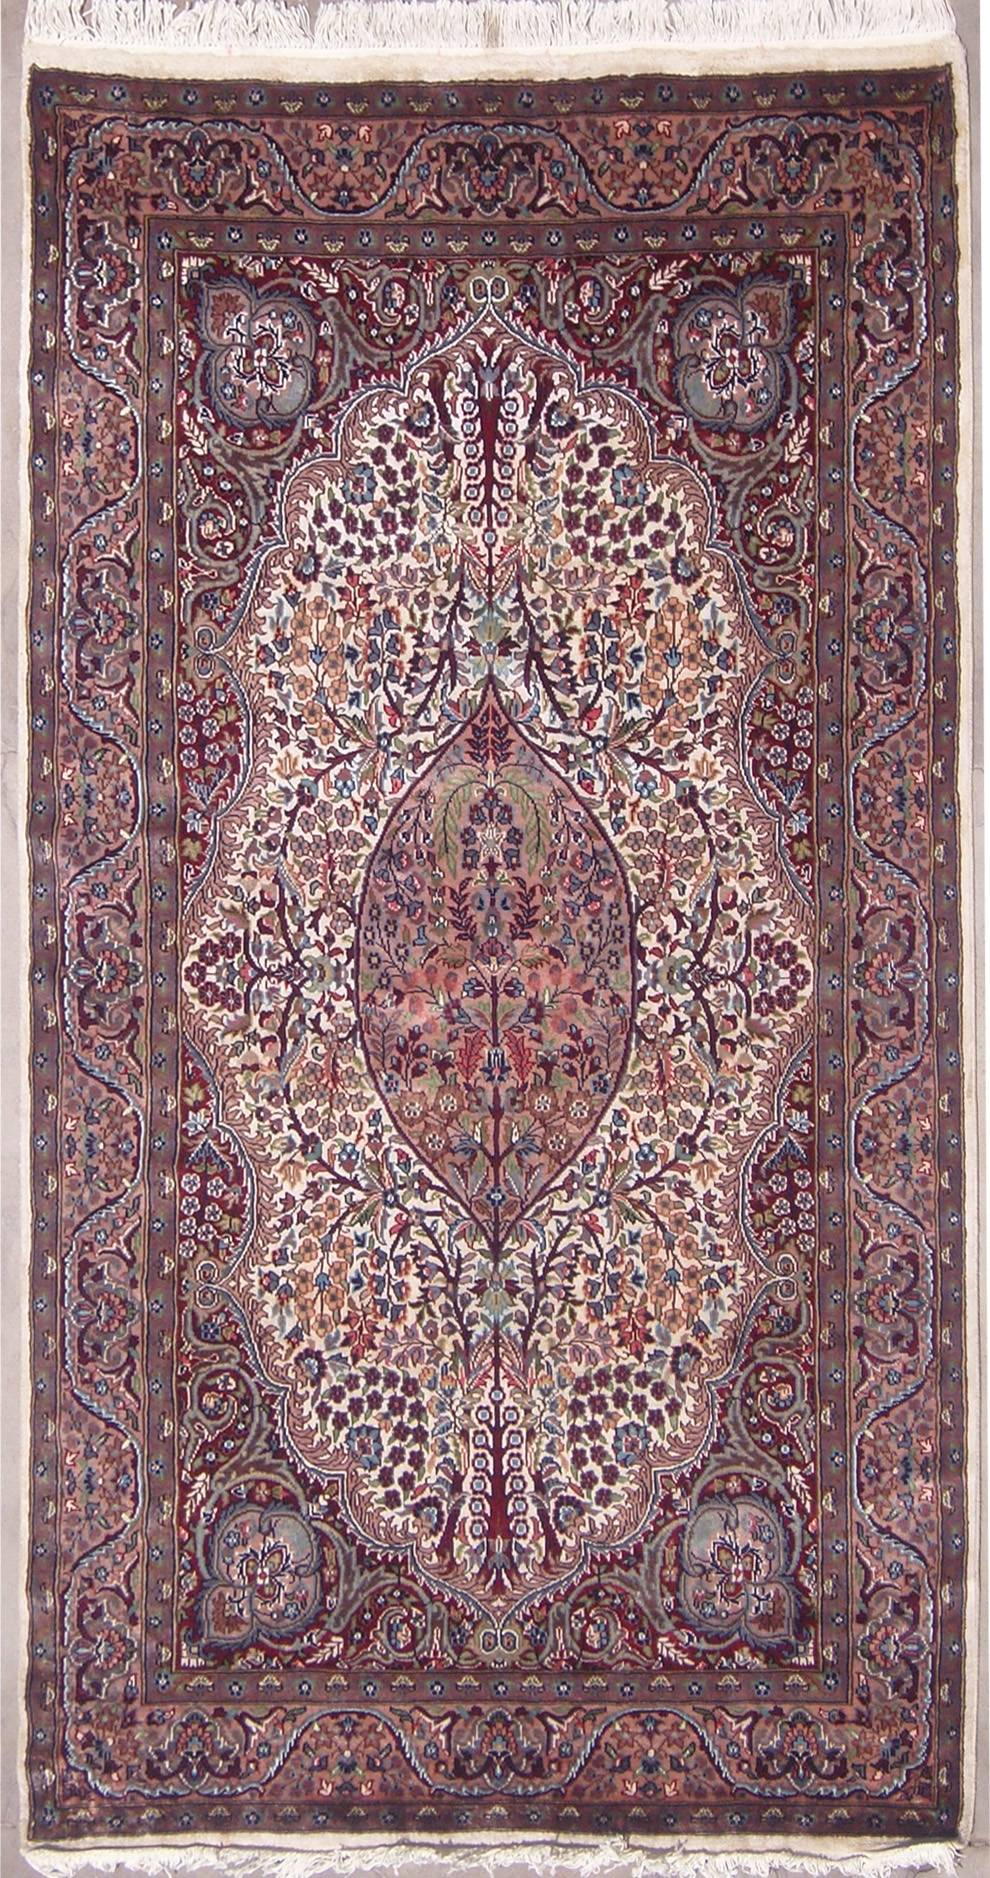 4 6x6 8 Rug Pak Persian Tree Of Life Handmade Silk And Wool Rugs A